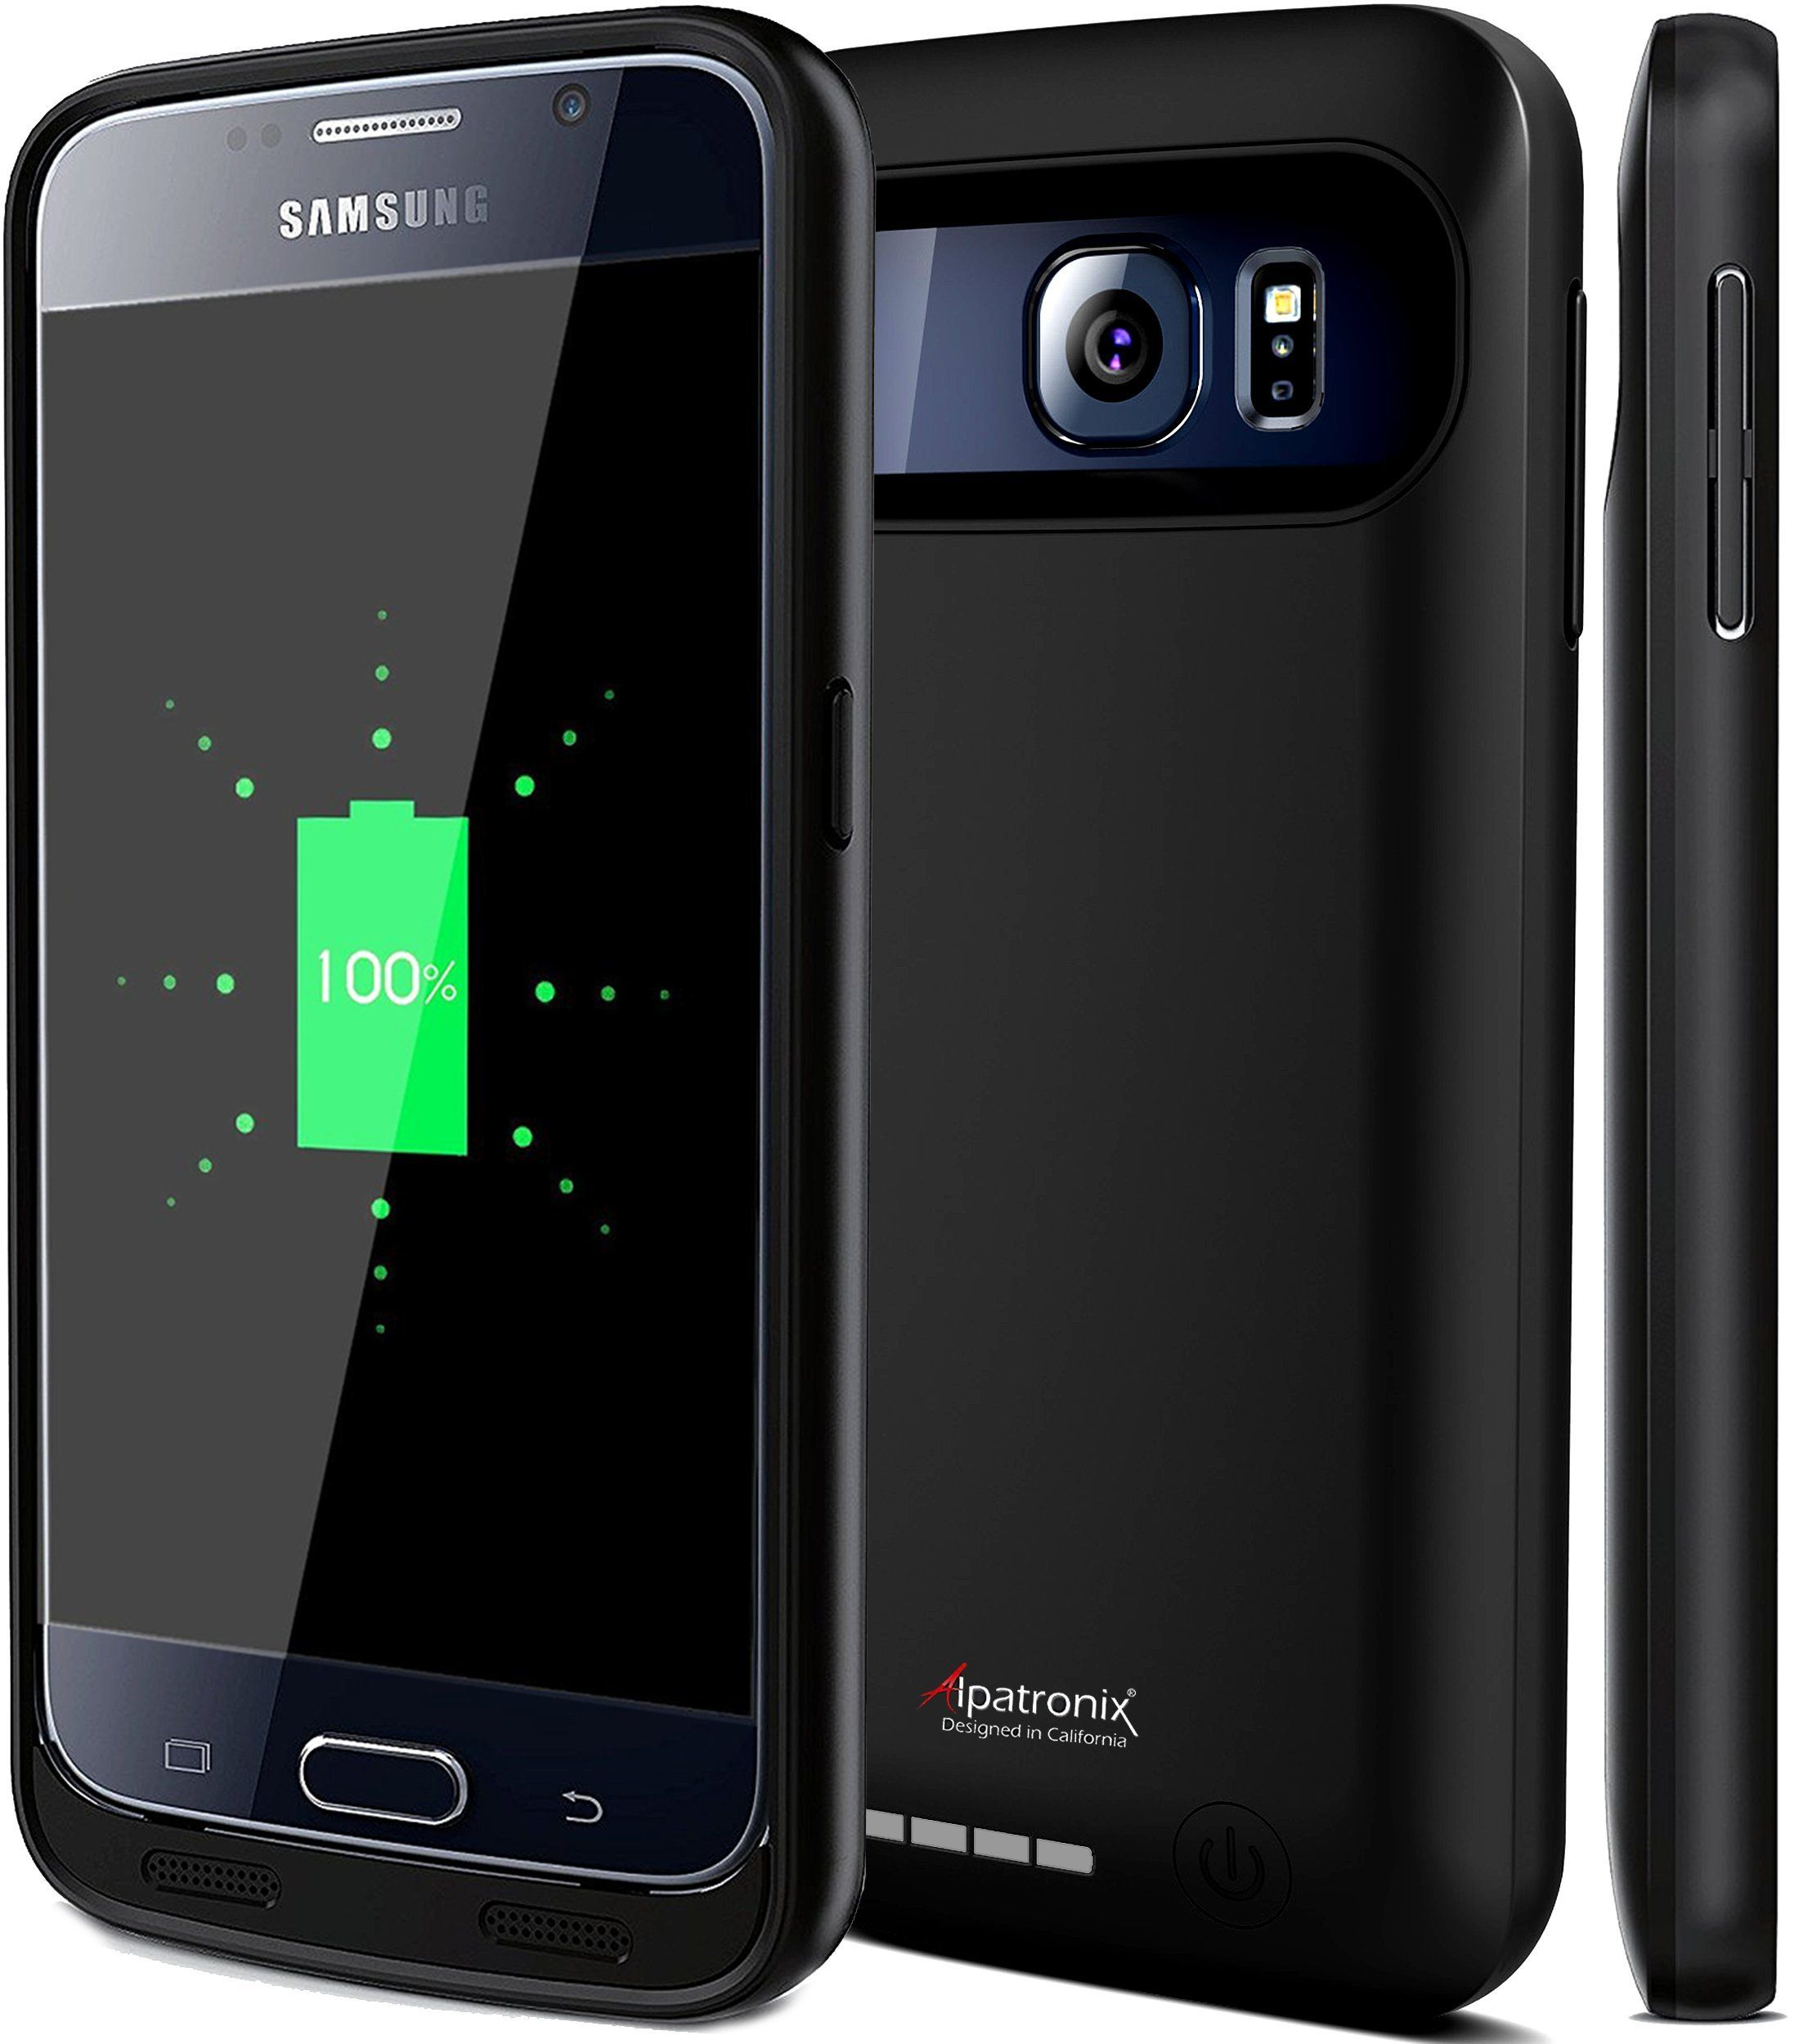 Galaxy s6 capacitive buttons the android soul - Galaxy S6 Battery Case Alpatronix Bx410 3500mah Slim External Protective Removable Rechargeable Portable Charging Case